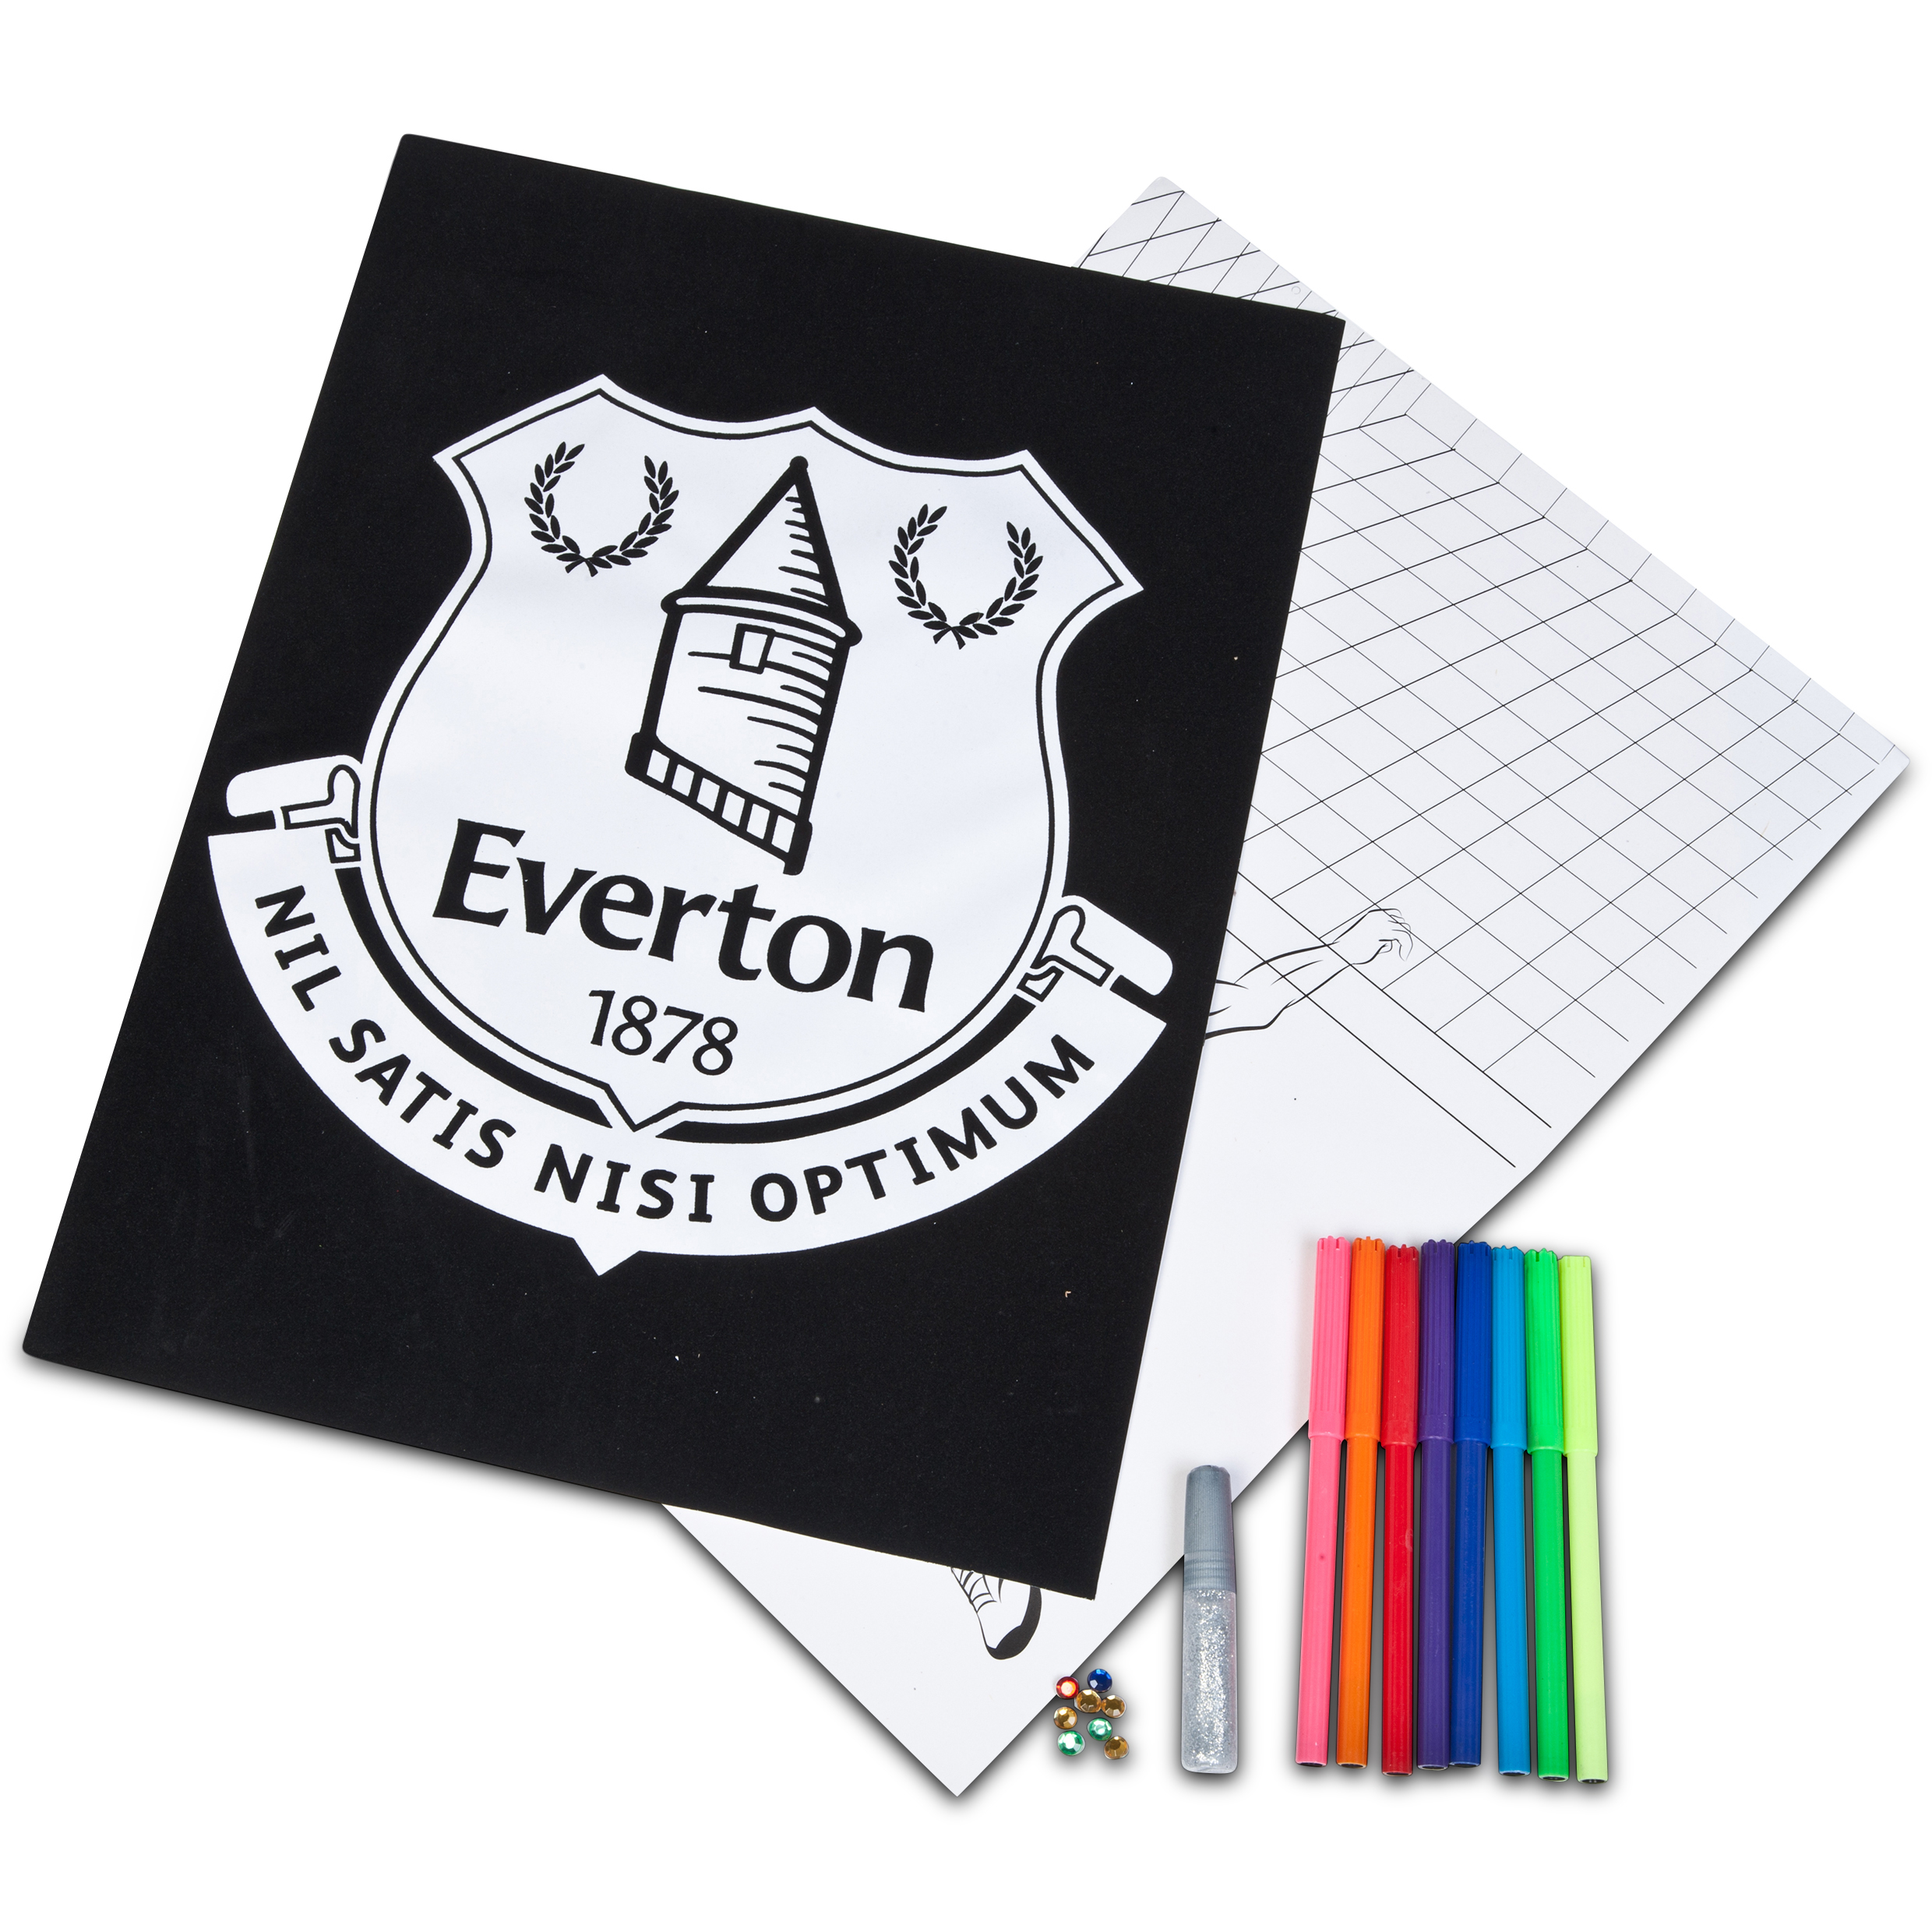 Everton Velvet art